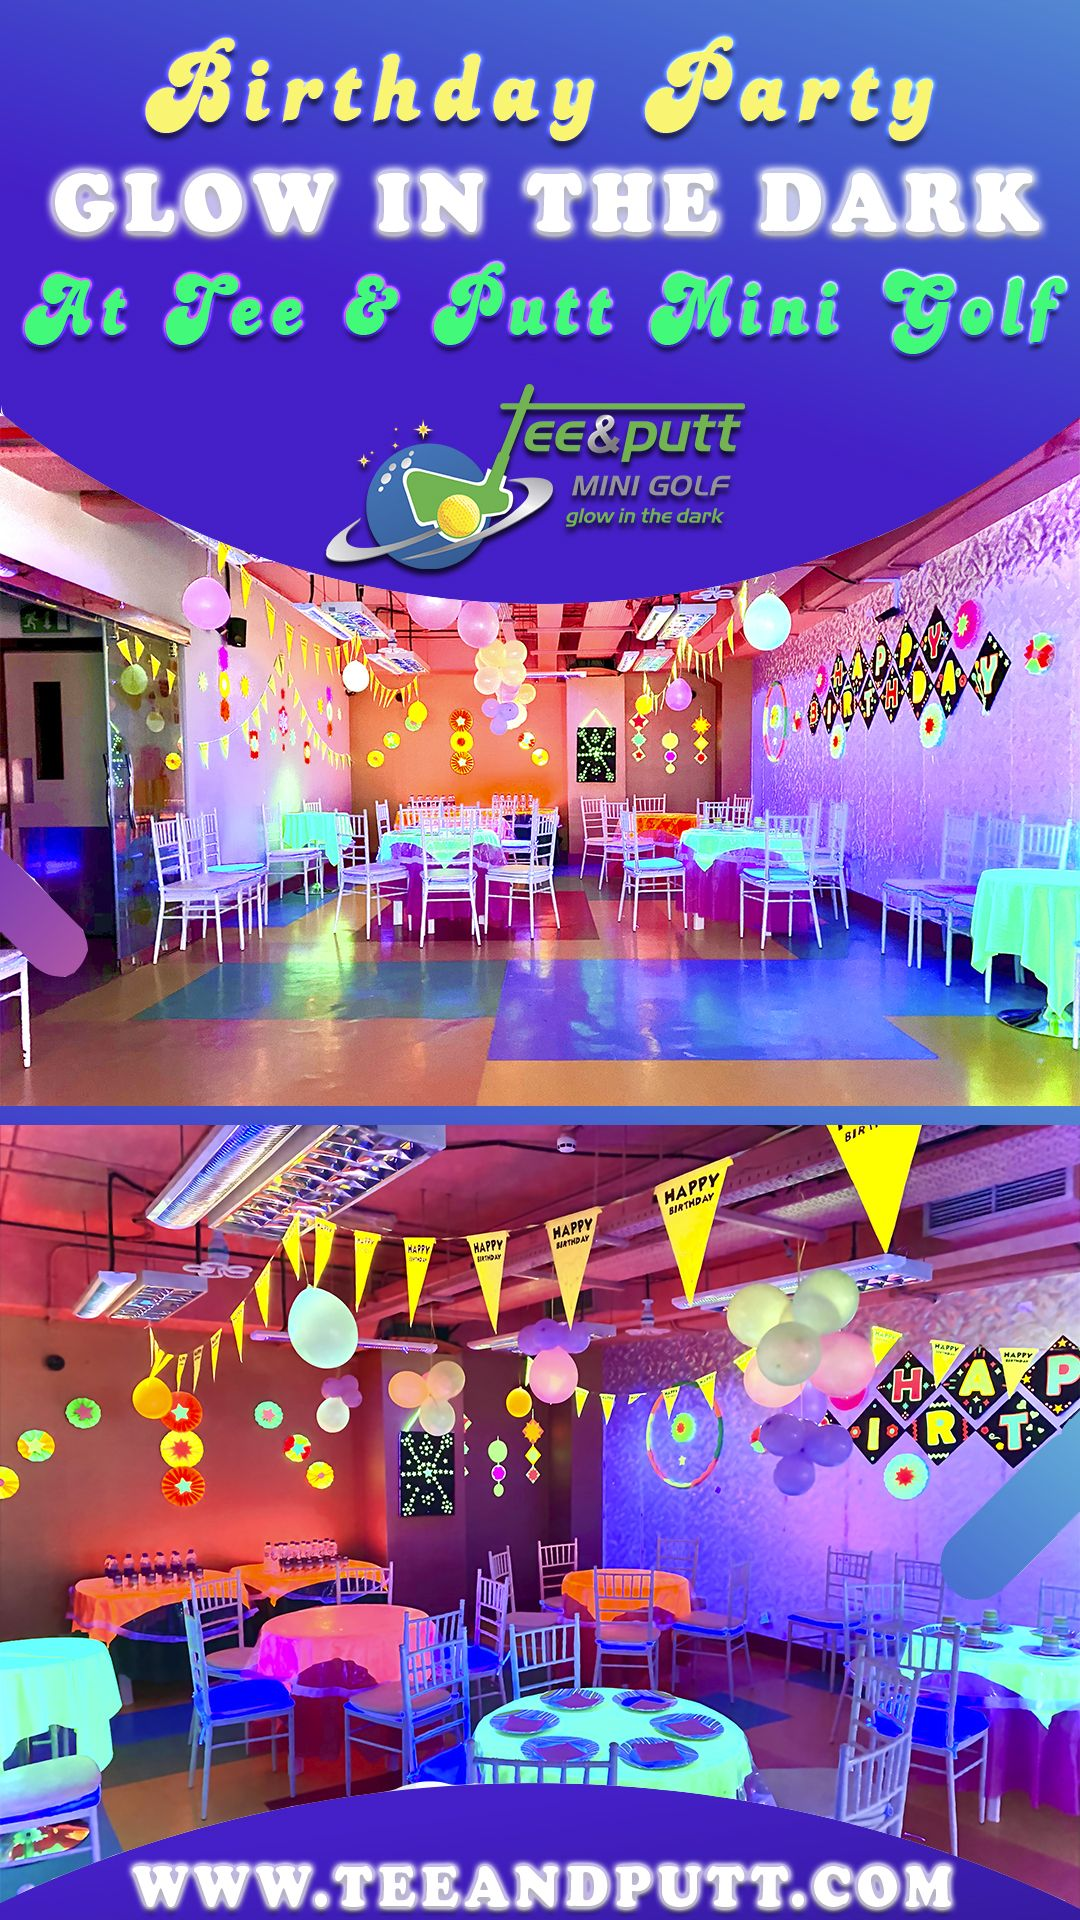 Birthday Party Birthday Party Venues Kids Birthday Party Kids Birthday Party Venues